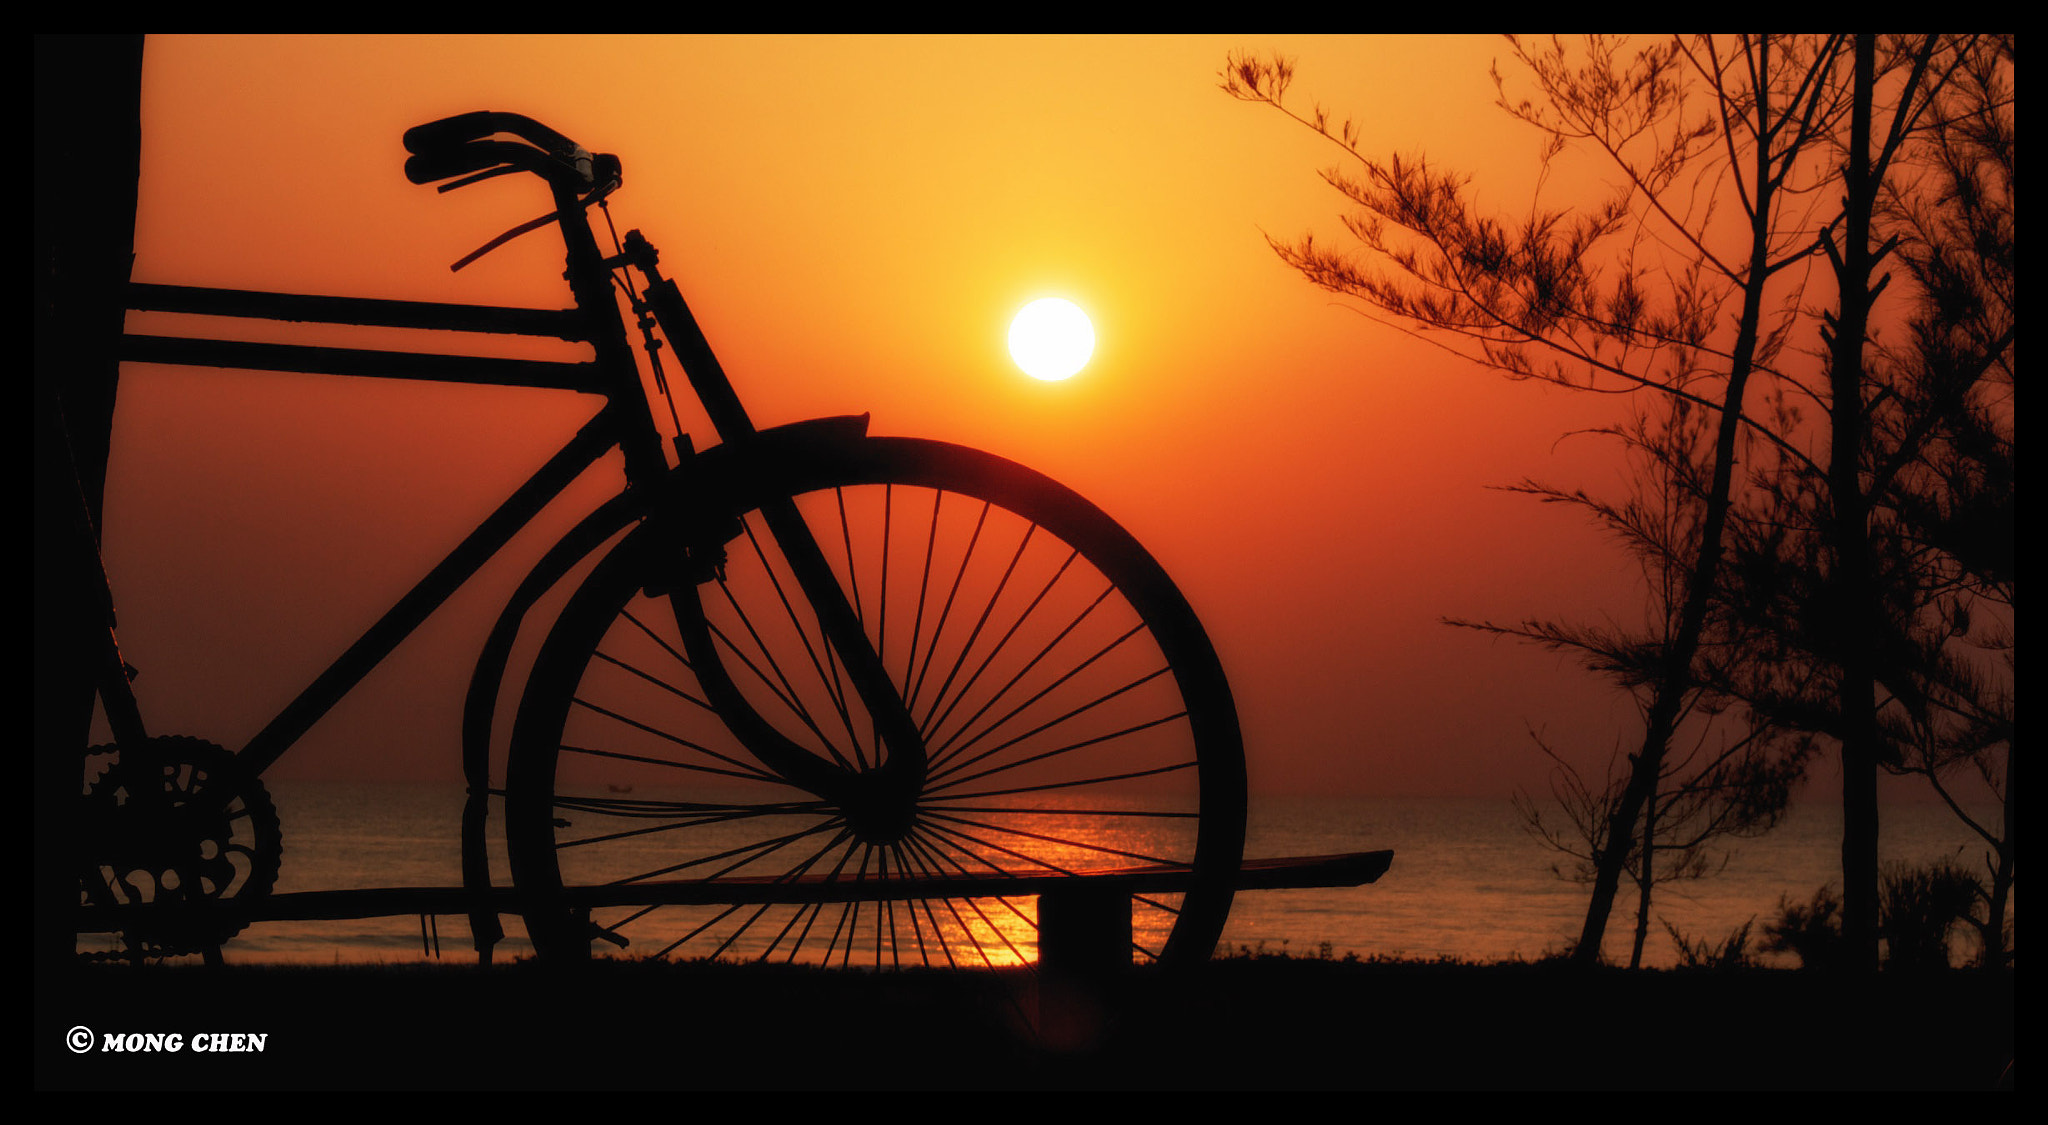 Photograph End of the Day by Mong Chen on 500px